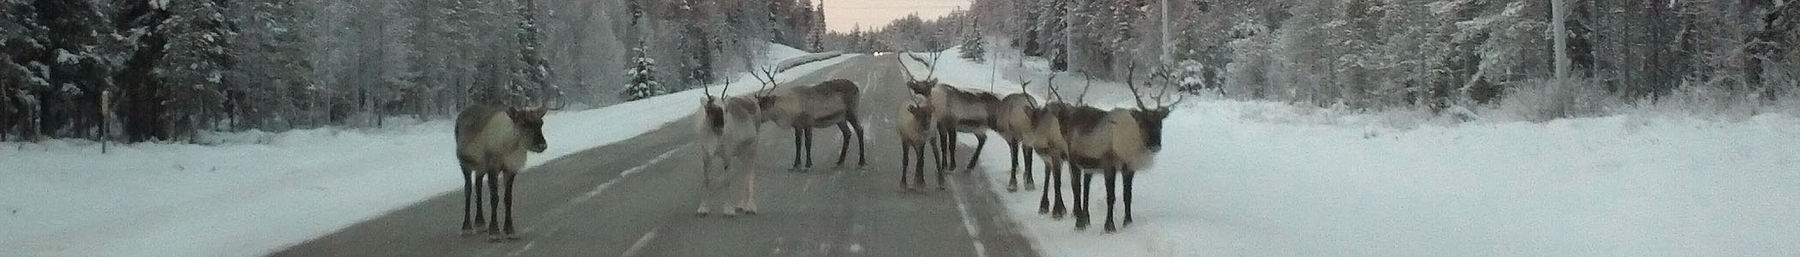 Northern Finland banner Reindeer in Posio - sharpened.jpg